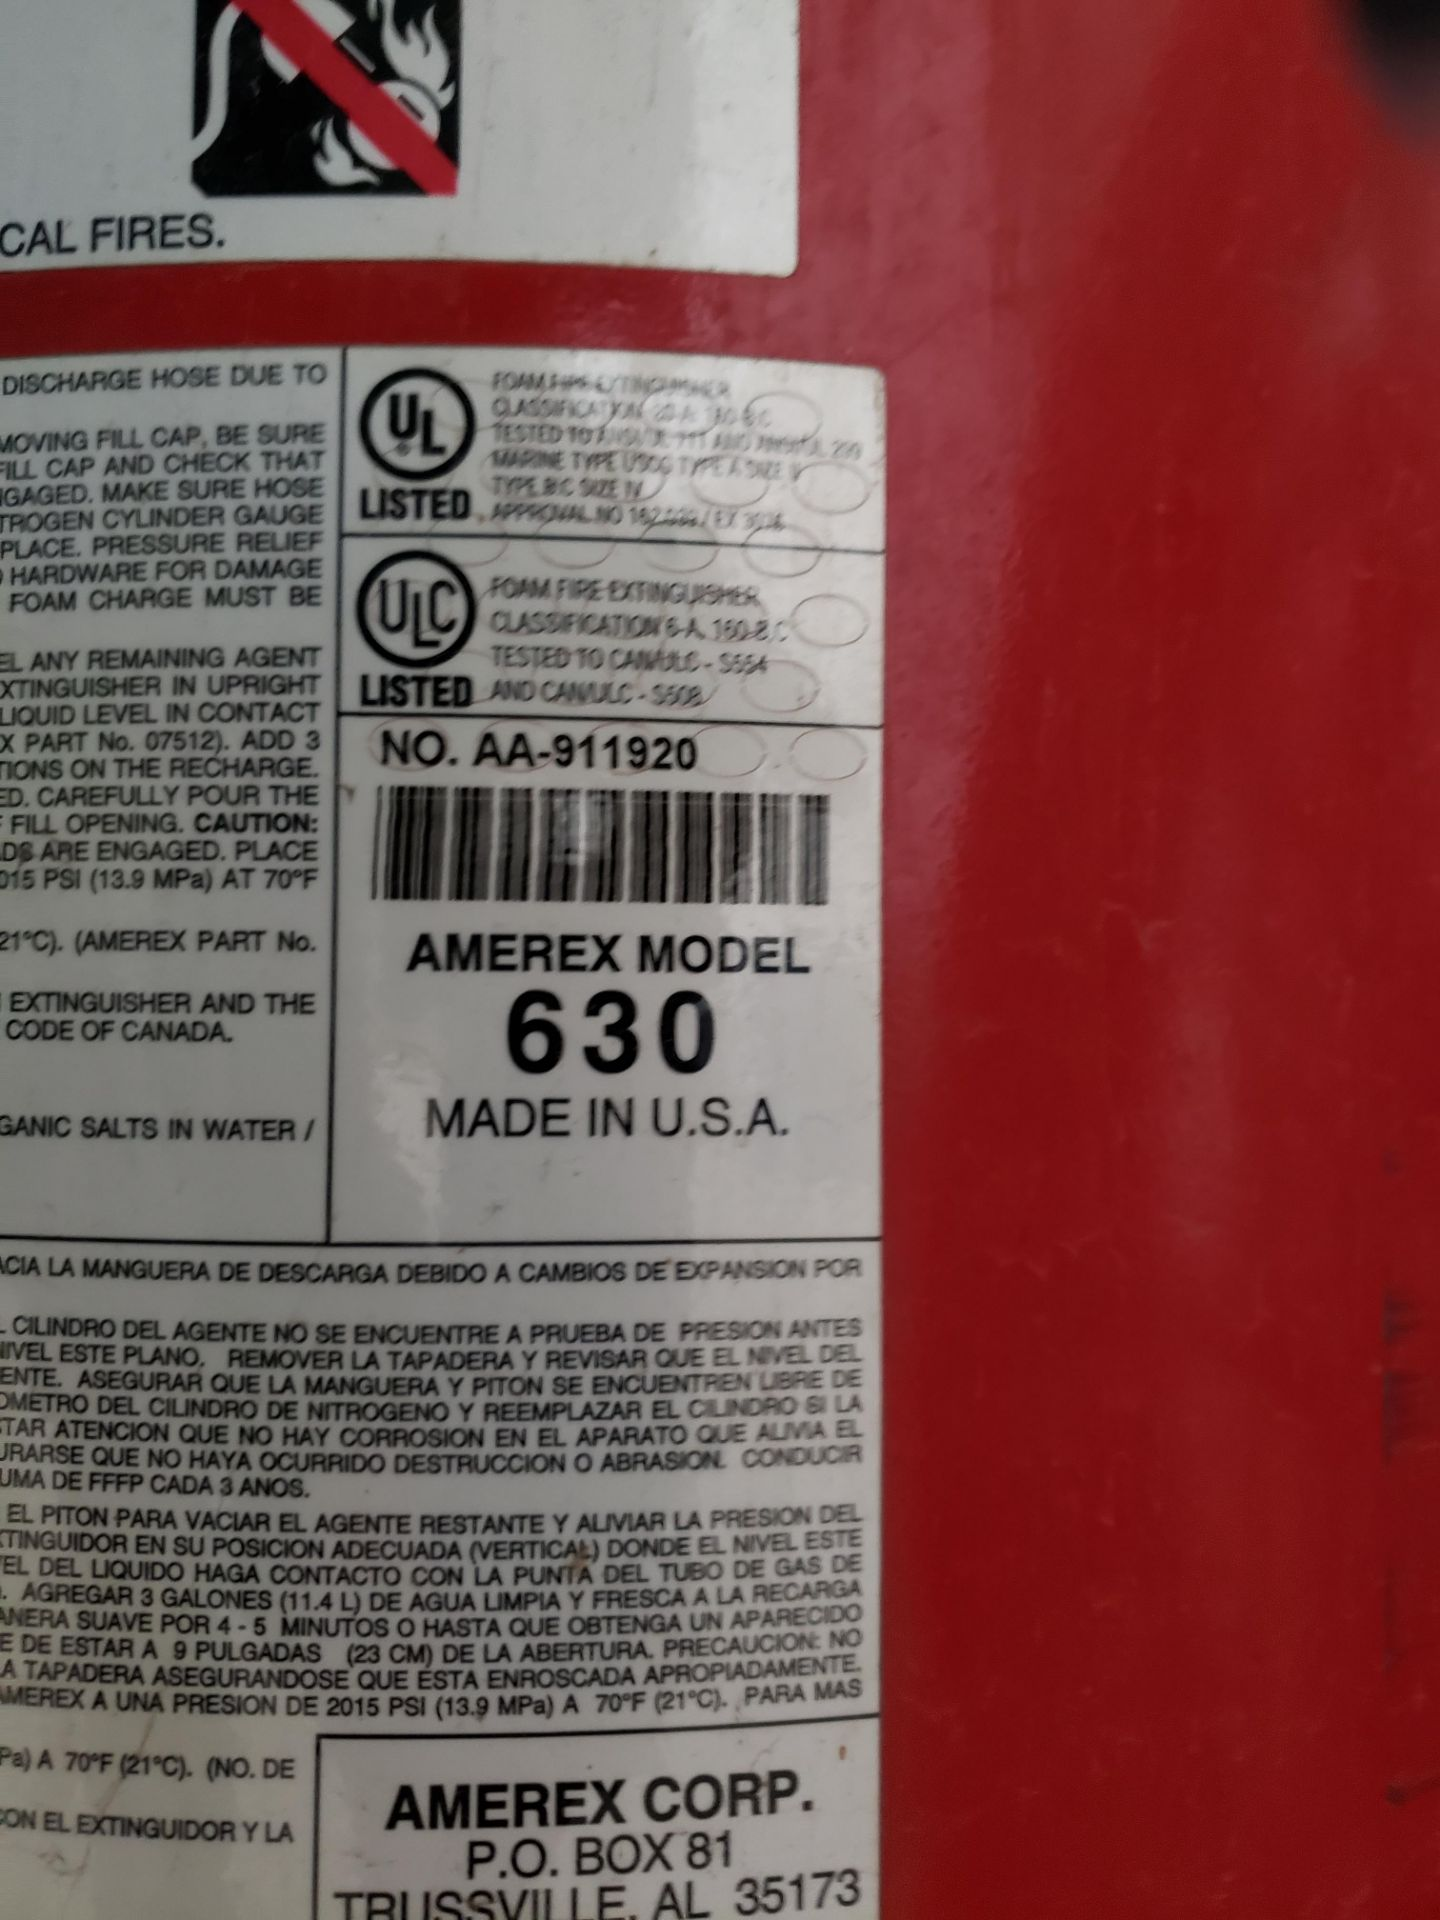 Lot 5 - Amerex Fire Extinguisher, M# 630 | Rig Fee: $25